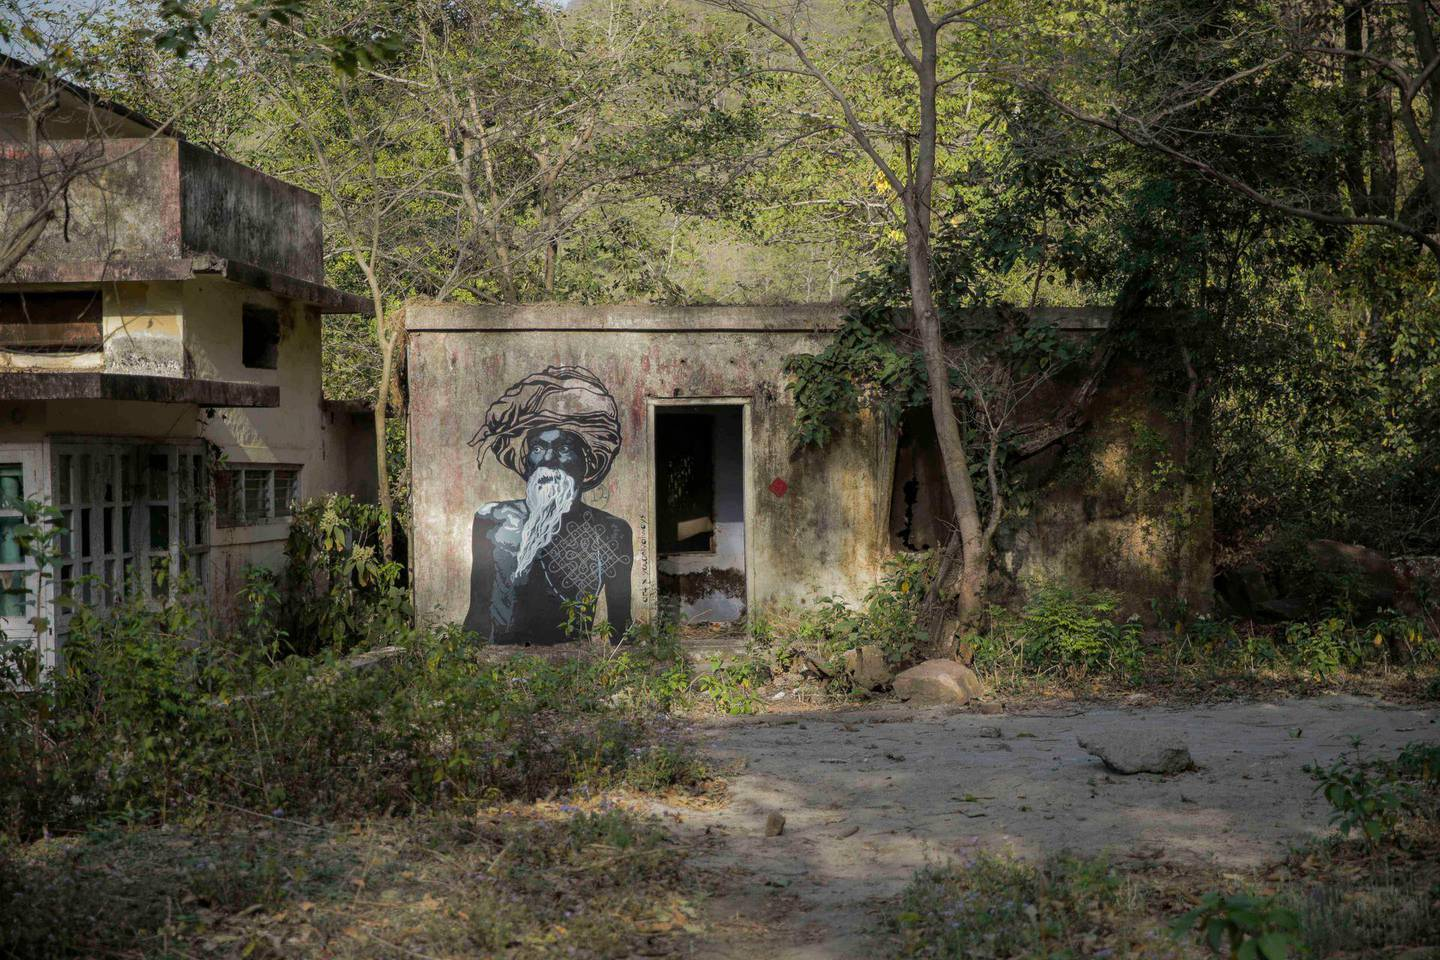 *** EXCLUSIVE ***RISHIKESH, INDIA - MARCH 21, 2016: Painting of Maharishi Mahesh Yogi, on March 21, 2016 in Rishikesh, Uttarakhand, India.AN abandoned Hindu monastery that was once home to the Beatles has become a place of pilgrimage for music fans and yogis seeking enlightenment. The ashram in Rishikesh, India, is located in the foothills of the Himalayas, an area known as the Yoga Capital of the World. Seen as a holy city by Hindus, Rishikesh has been a place of worship for centuries and gets visitors from all around the world coming to see the numerous temples and monasteries. During her time travelling through the holy sites, British photographer Kashfi Halford, 39, visited an ashram that once belonged to Maharishi Mahesh Yogi, a spiritual leader to both the Beatles and The Beach Boys.PHOTOGRAPH BY Kashfi Halford / Bacroft Images / Getty ImagesLondon-T:+44 207 033 1031 E:hello@barcroftmedia.com -New York-T:+1 212 796 2458 E:hello@barcroftusa.com -New Delhi-T:+91 11 4053 2429 E:hello@barcroftindia.com www.barcroftmedia.com (Photo credit should read Kashfi Halford / Bacroft Images / Barcroft Media via Getty Images)